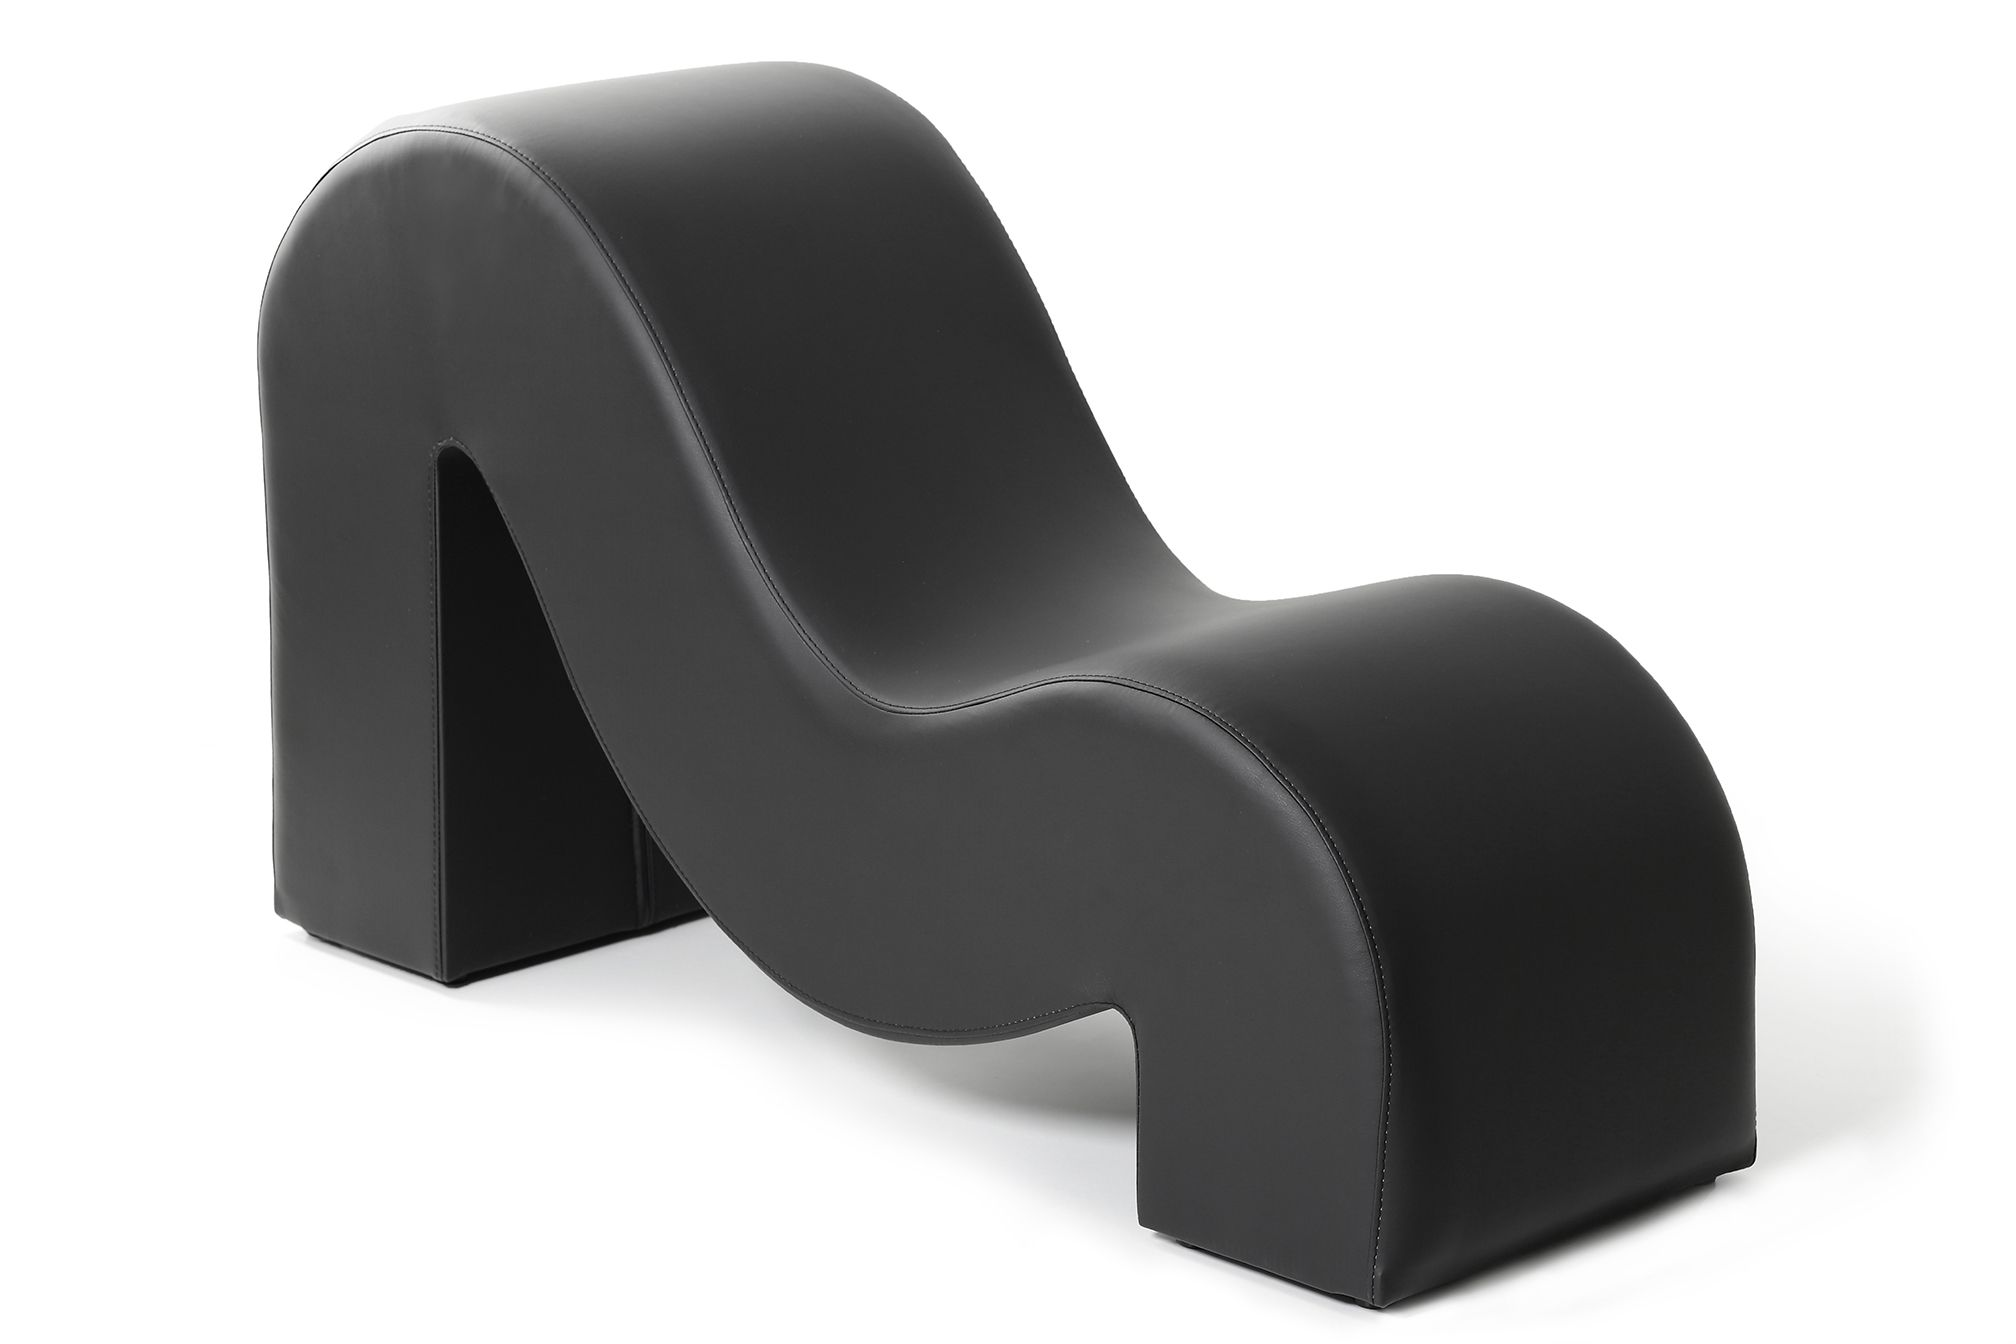 Get Your Relaxation Yoga And Pilates Furniture At Tantra Designs Chaise Longue Luxury Loungers Bespoke Made For Holistic Pr Chaise Lounge Chaise Wade Logan